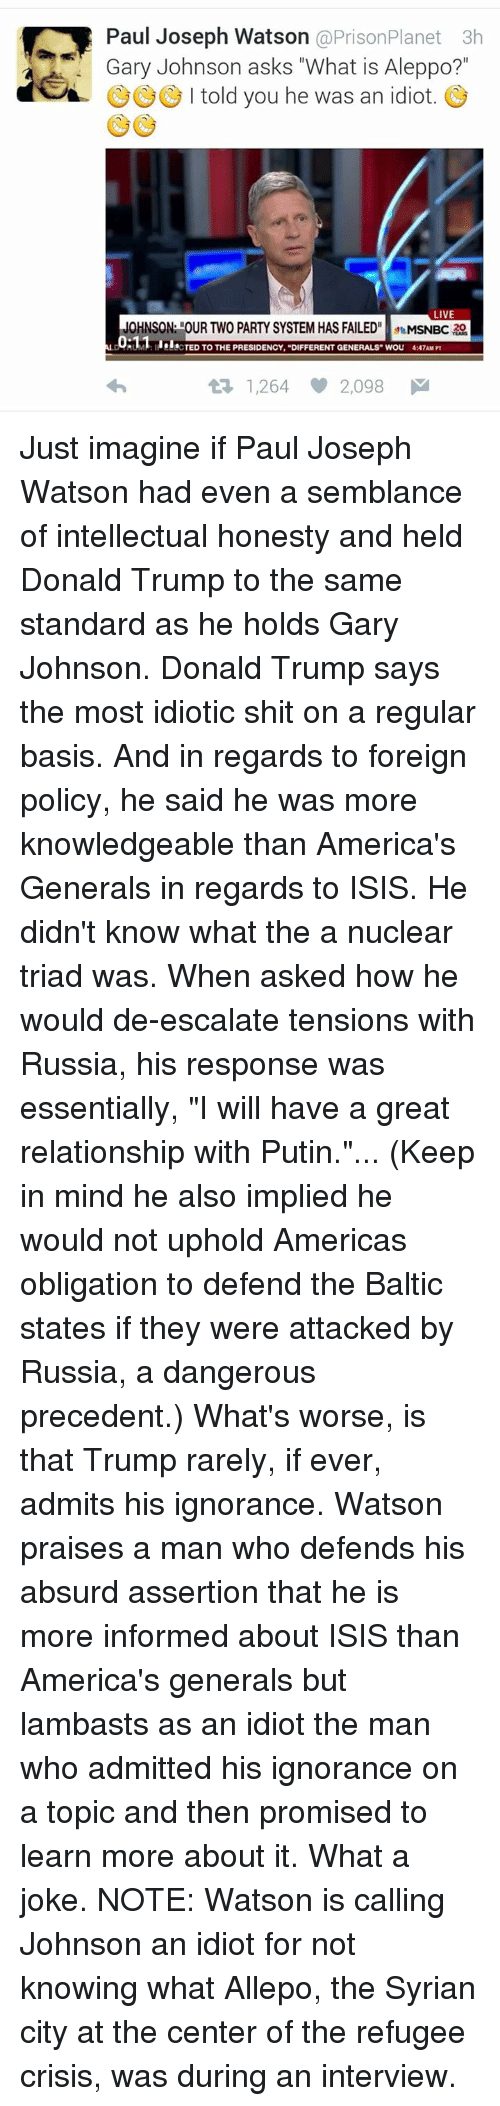 """Baltic: Paul Joseph Watson  @Prison Planet 3h  Gary Johnson asks """"What is Aleppo?  a I told you he was an idiot  LIVE  MSNBC 20  Hull CTED TO THE PRESIDENCY, """"DIFFERENT GENERALS WOU 4:47AM PT  1,264 2,098 M Just imagine if Paul Joseph Watson had even a semblance of intellectual honesty and held Donald Trump to the same standard as he holds Gary Johnson.   Donald Trump says the most idiotic shit on a regular basis. And in regards to foreign policy, he said he was more knowledgeable than America's Generals in regards to ISIS. He didn't know what the a nuclear triad was.   When asked how he would de-escalate tensions with Russia, his response was essentially, """"I will have a great relationship with Putin.""""...   (Keep in mind he also implied he would not uphold Americas obligation to defend the Baltic states if they were attacked by Russia, a dangerous precedent.)   What's worse, is that Trump rarely, if ever, admits his ignorance.   Watson praises a man who defends his absurd assertion that he is more informed about ISIS than America's generals but lambasts as an idiot the man who admitted his ignorance on a topic and then promised to learn more about it.   What a joke.   NOTE: Watson is calling Johnson an idiot for not knowing what Allepo, the Syrian city at the center of the refugee crisis, was during an interview."""